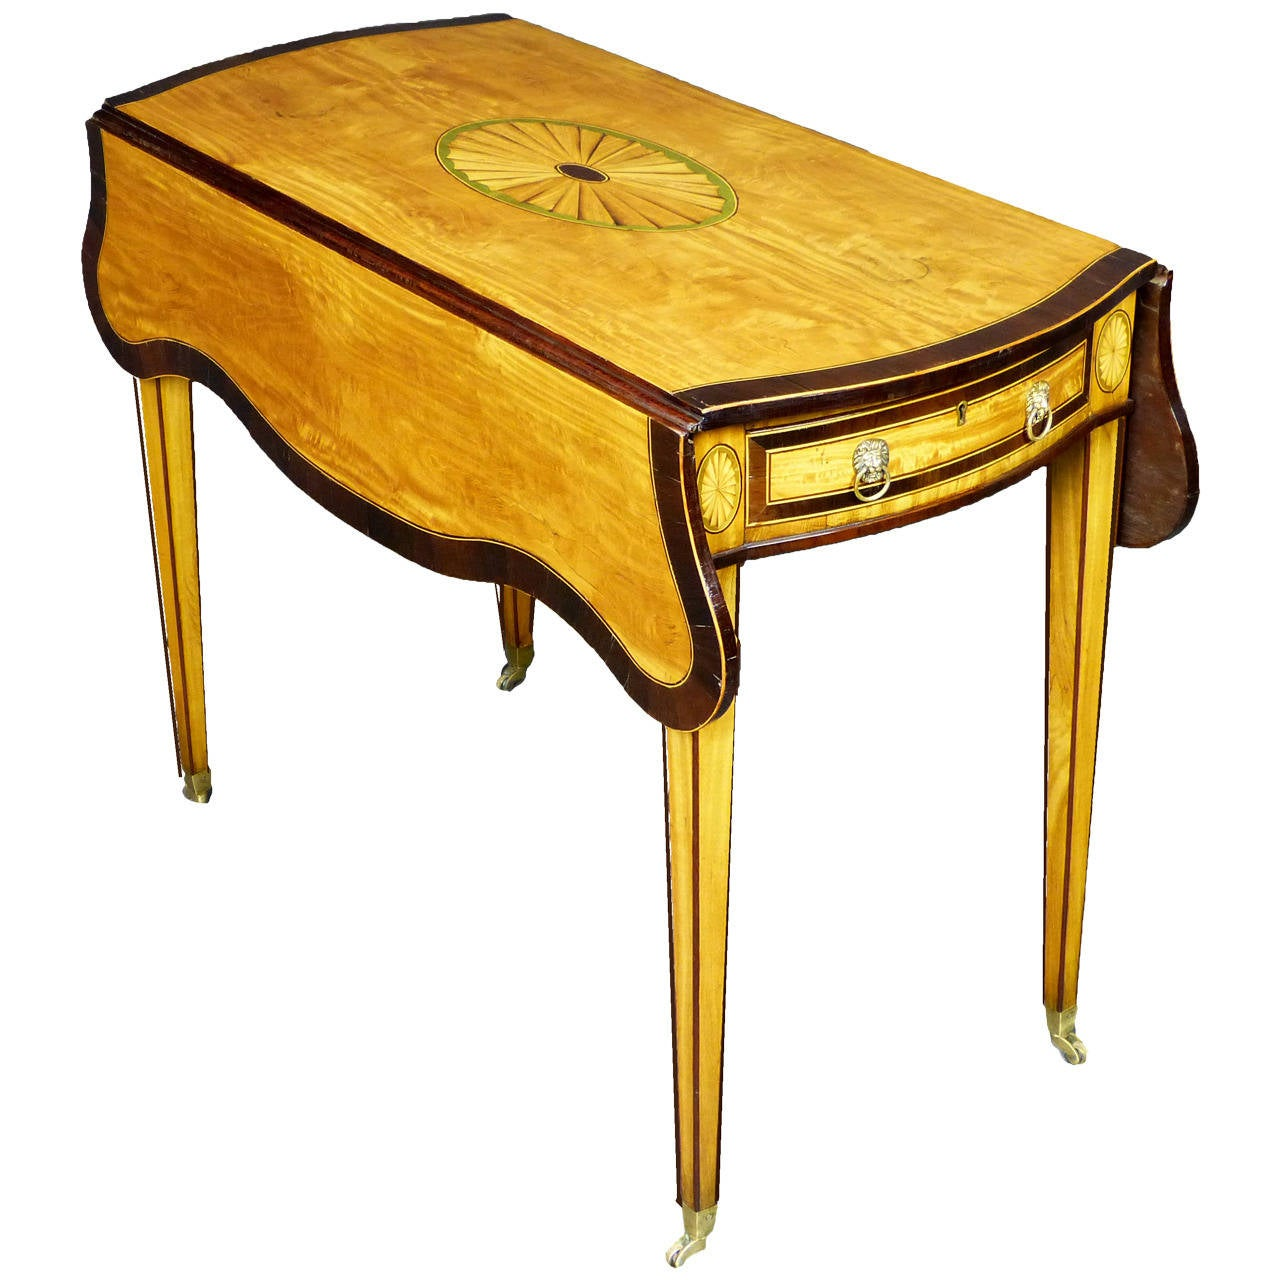 Captivating George III Sheraton Pembroke Table In Satinwood For Sale